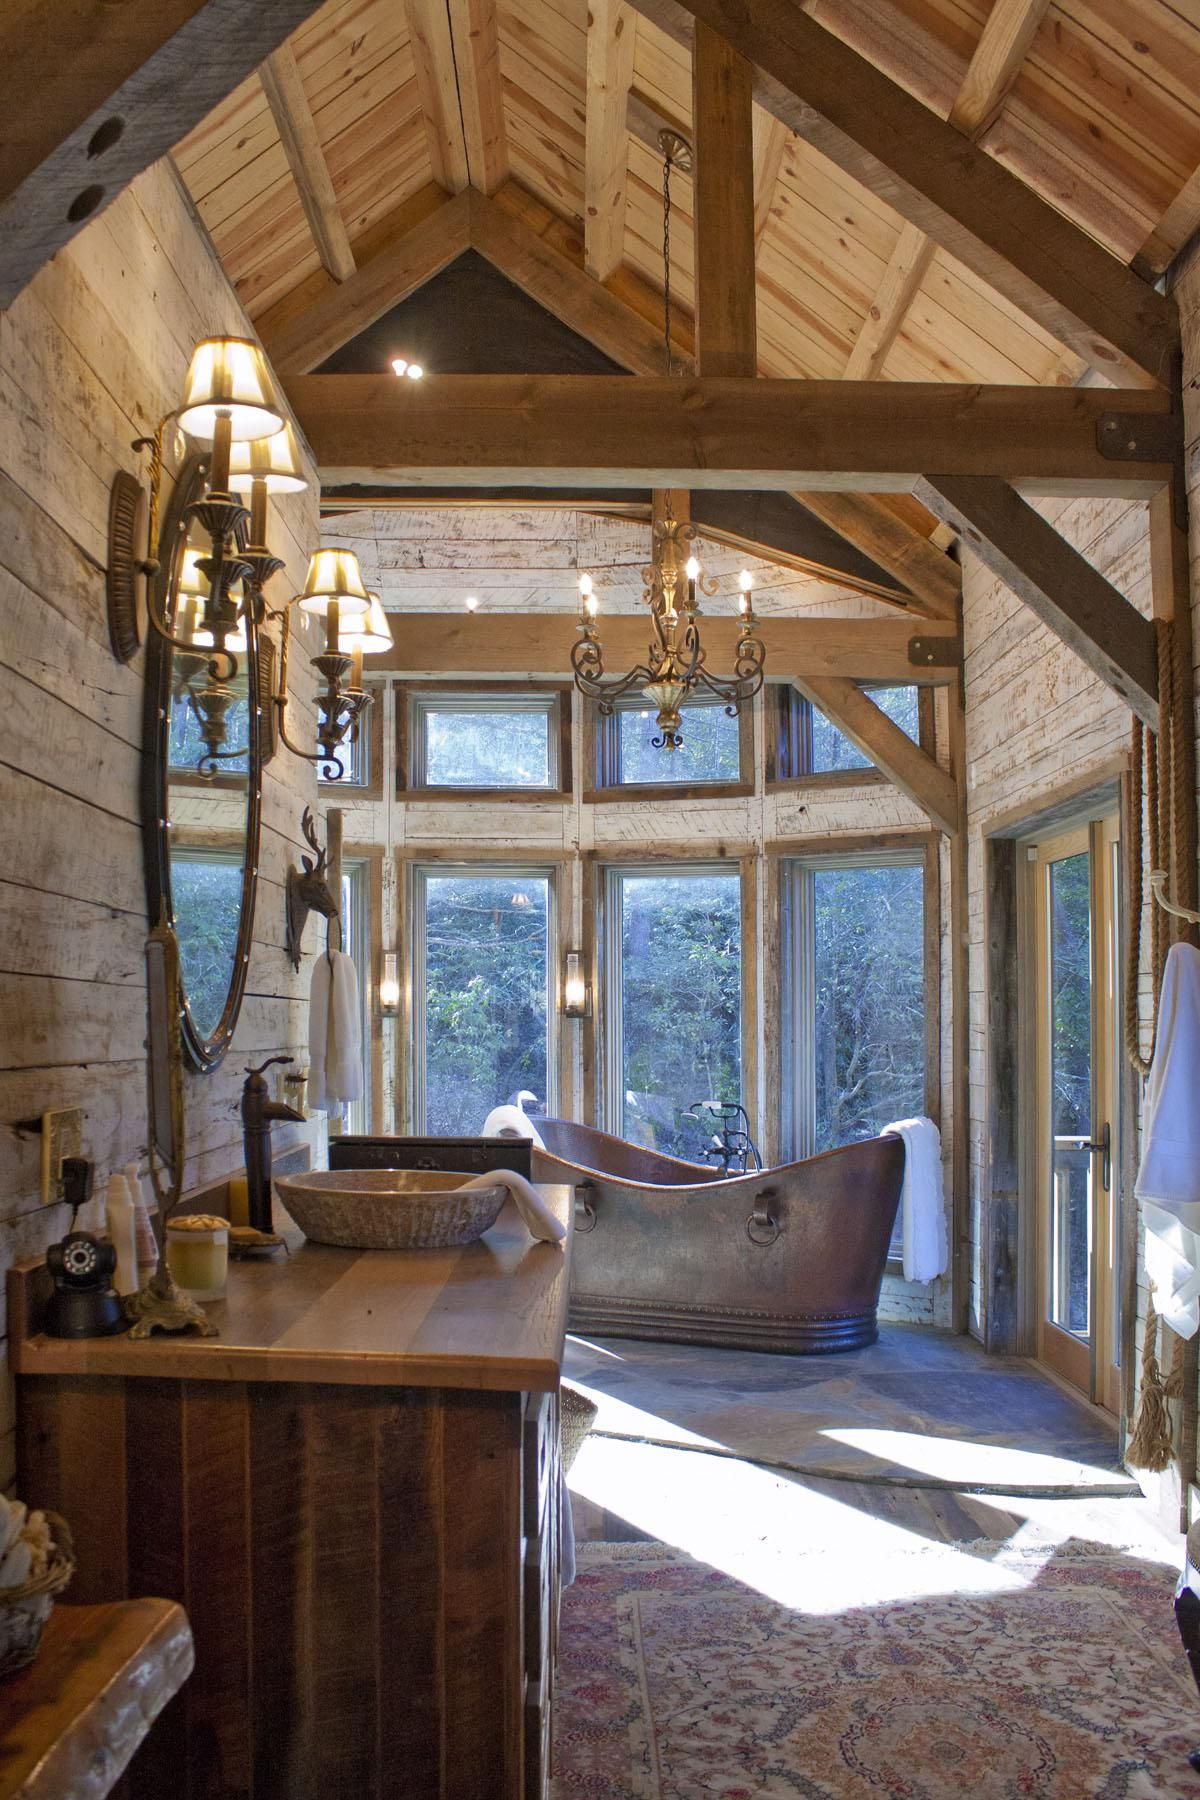 Stylish Homes Rustic Bathroom W Vaulted Ceilings Natural Reclaimed Materials